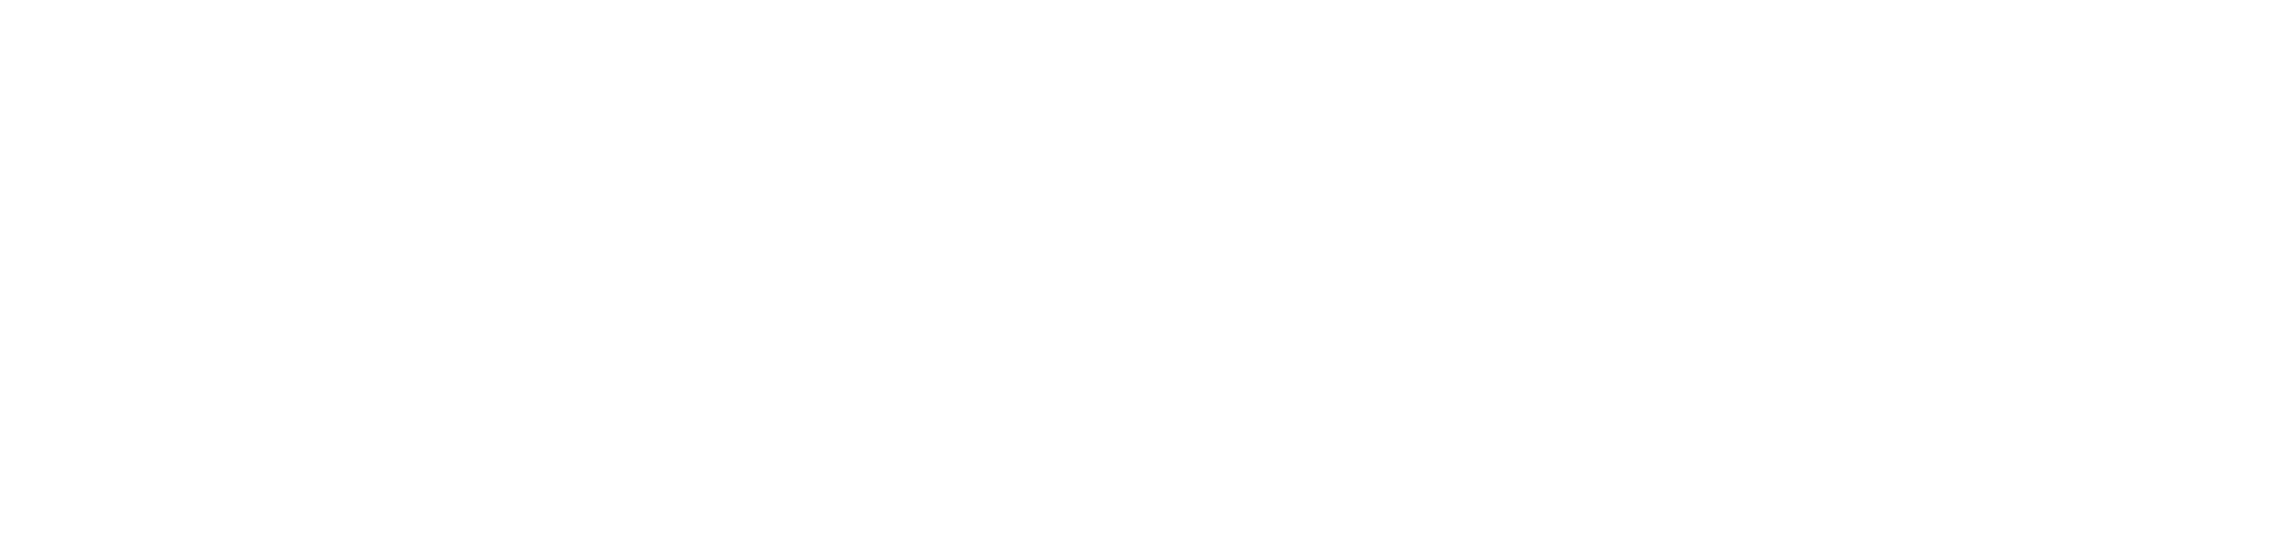 EAST ENTERTAINMENT